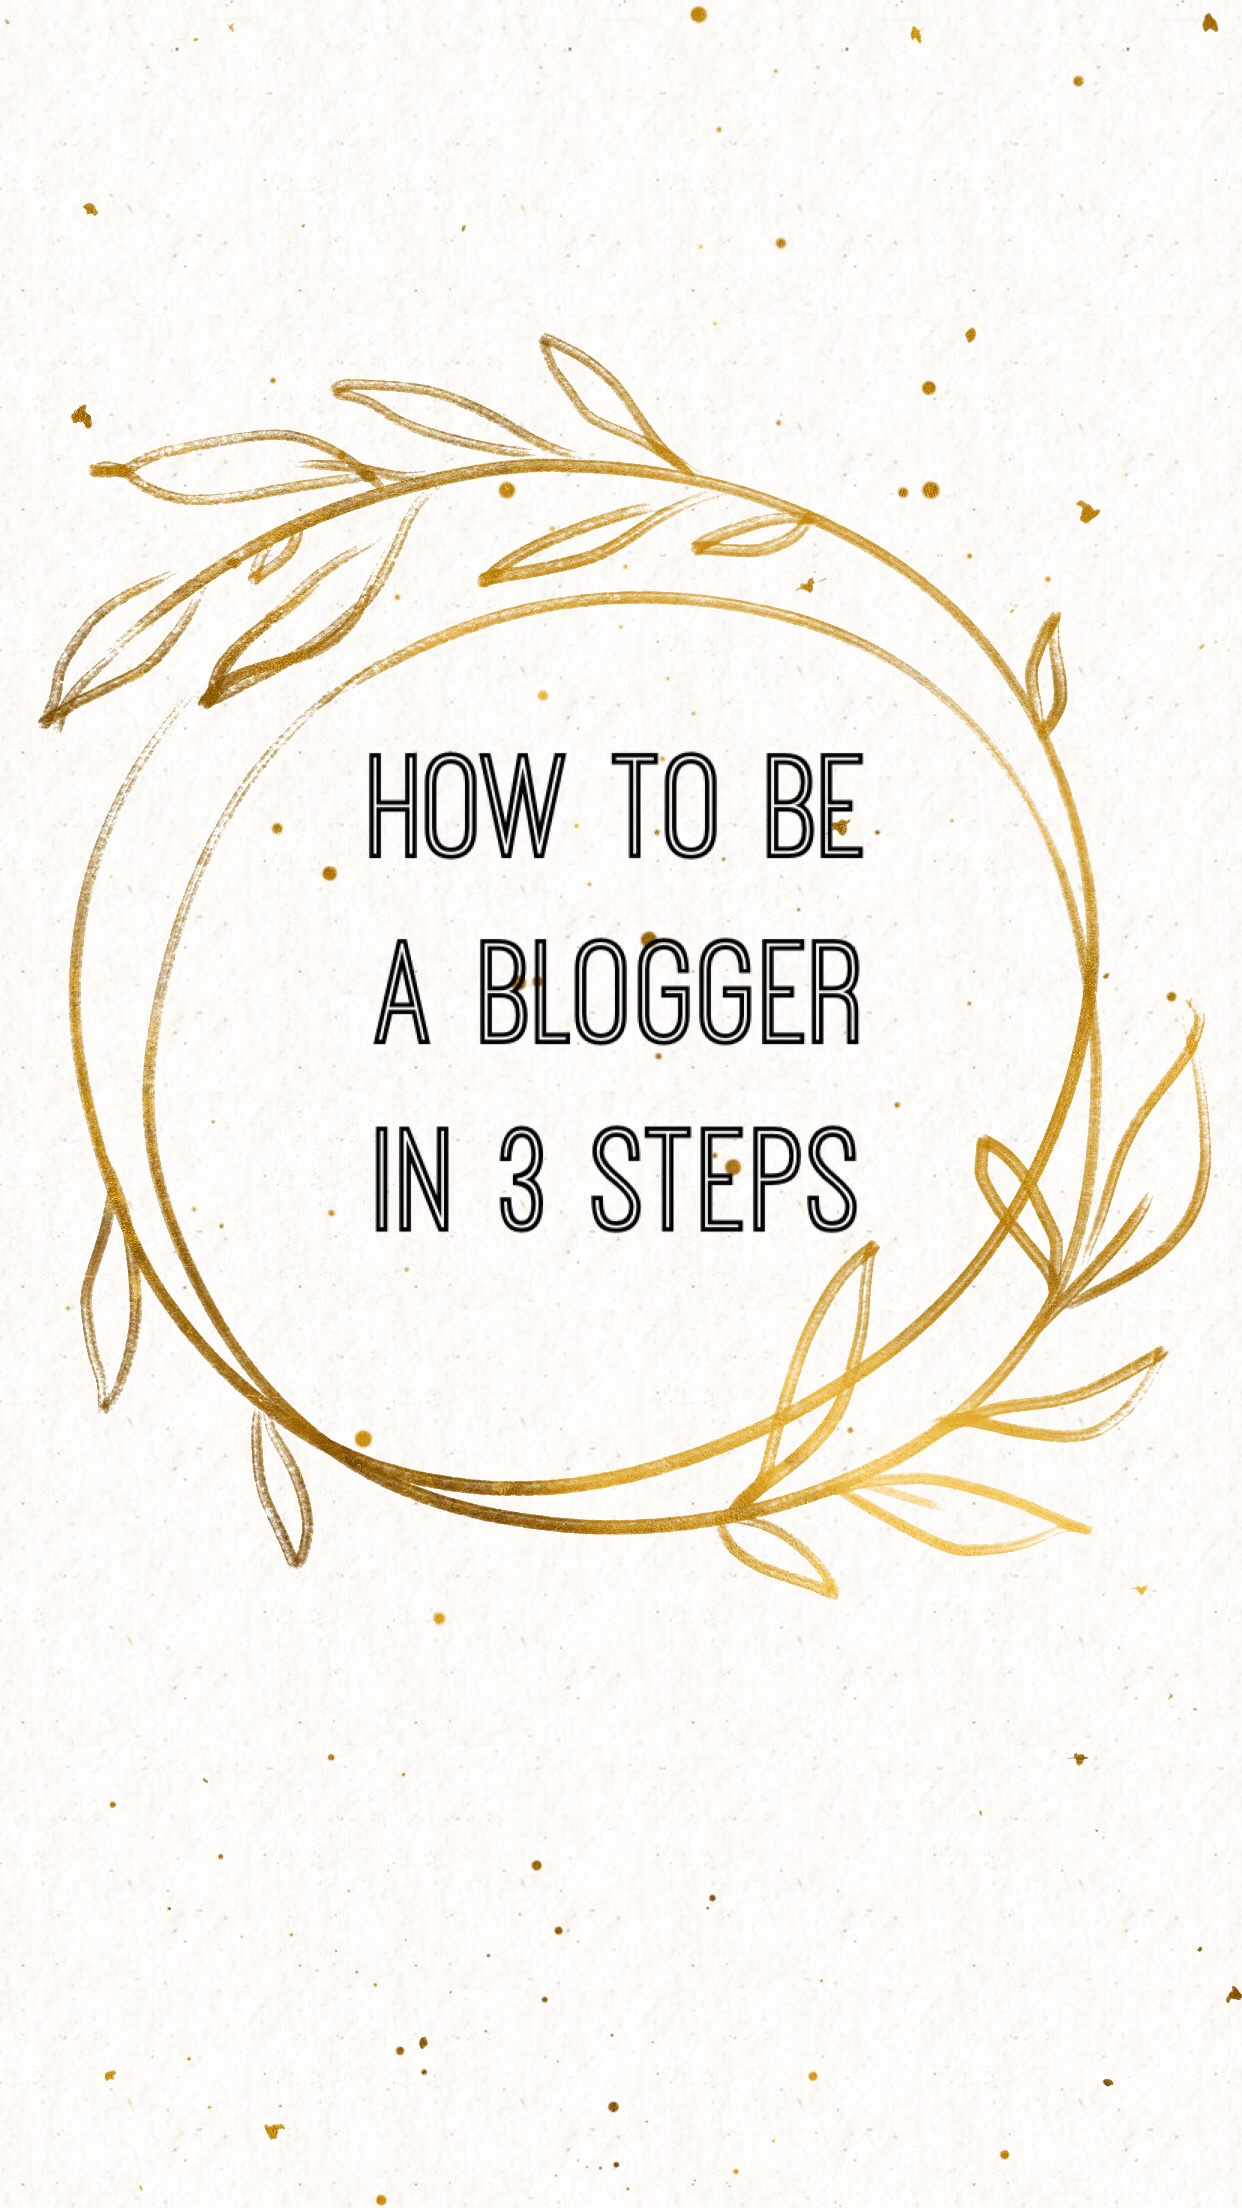 How to be a blogger in 3 steps